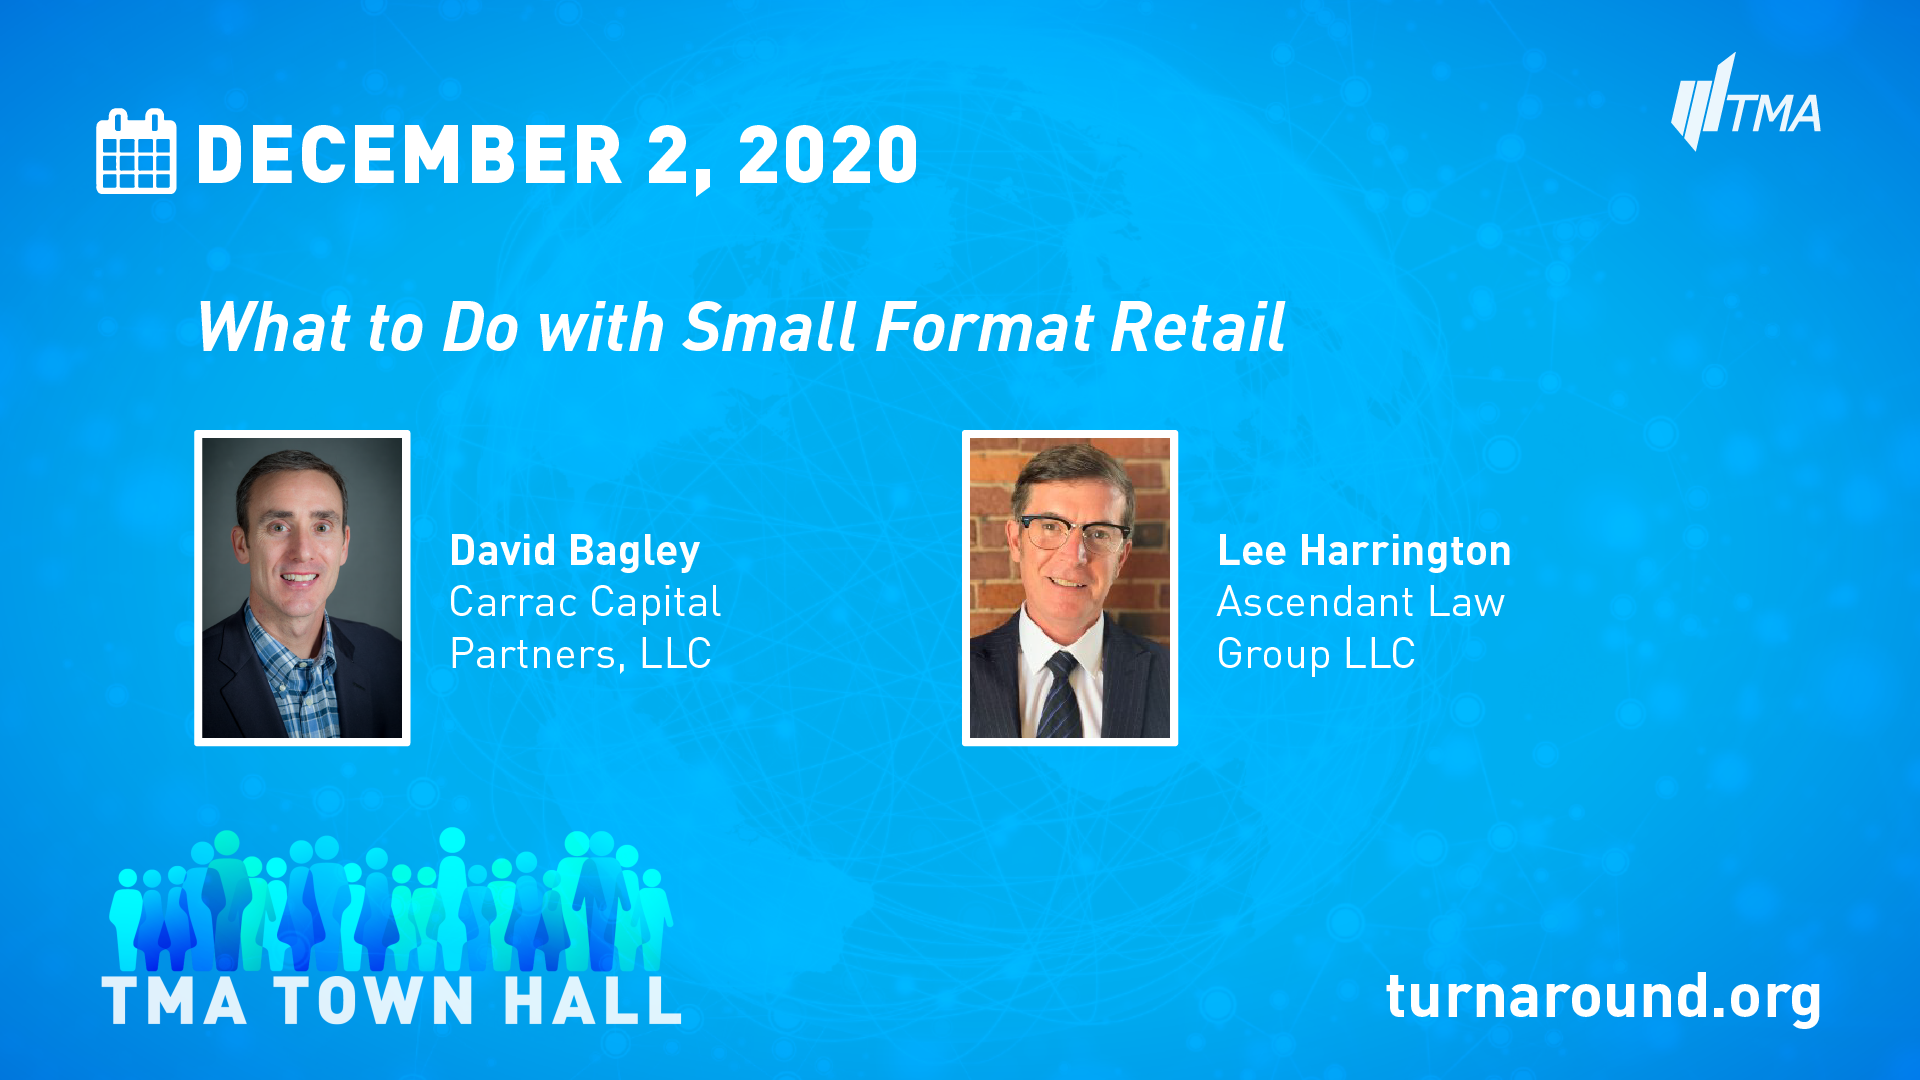 TMA Town Hall for December 2, 2020